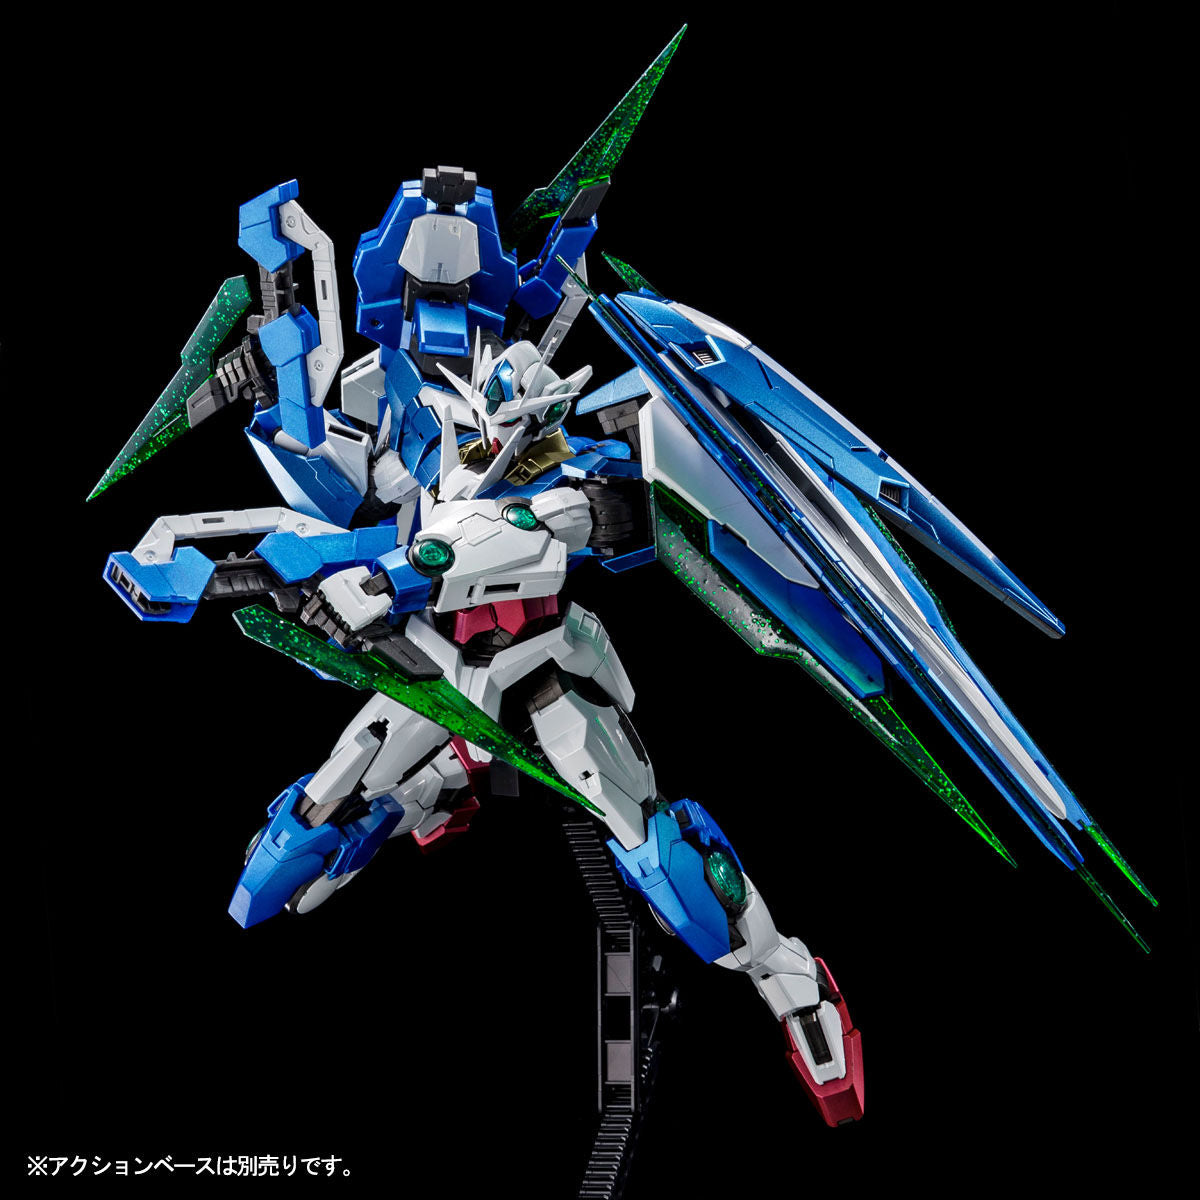 P-Bandai: MG 1/100 00 Qan[T] Full Saber Special Coating Ver. [End of July]